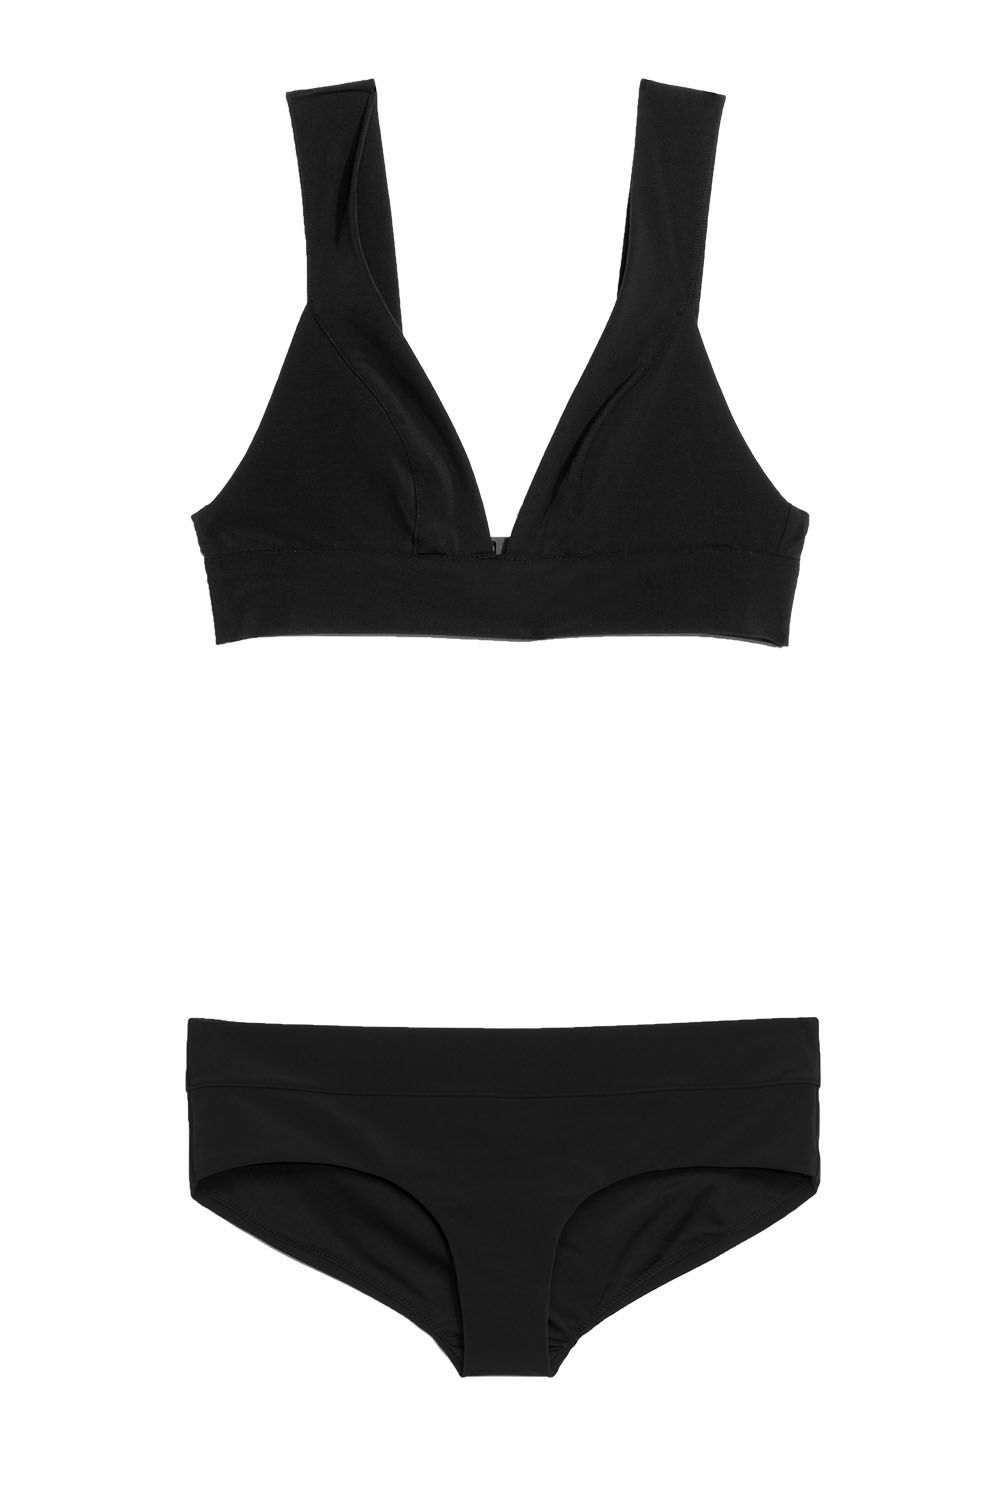 00f9c2f5dc Best Bikinis for Summer 2019 - 16 Two Piece Swimsuits for Women